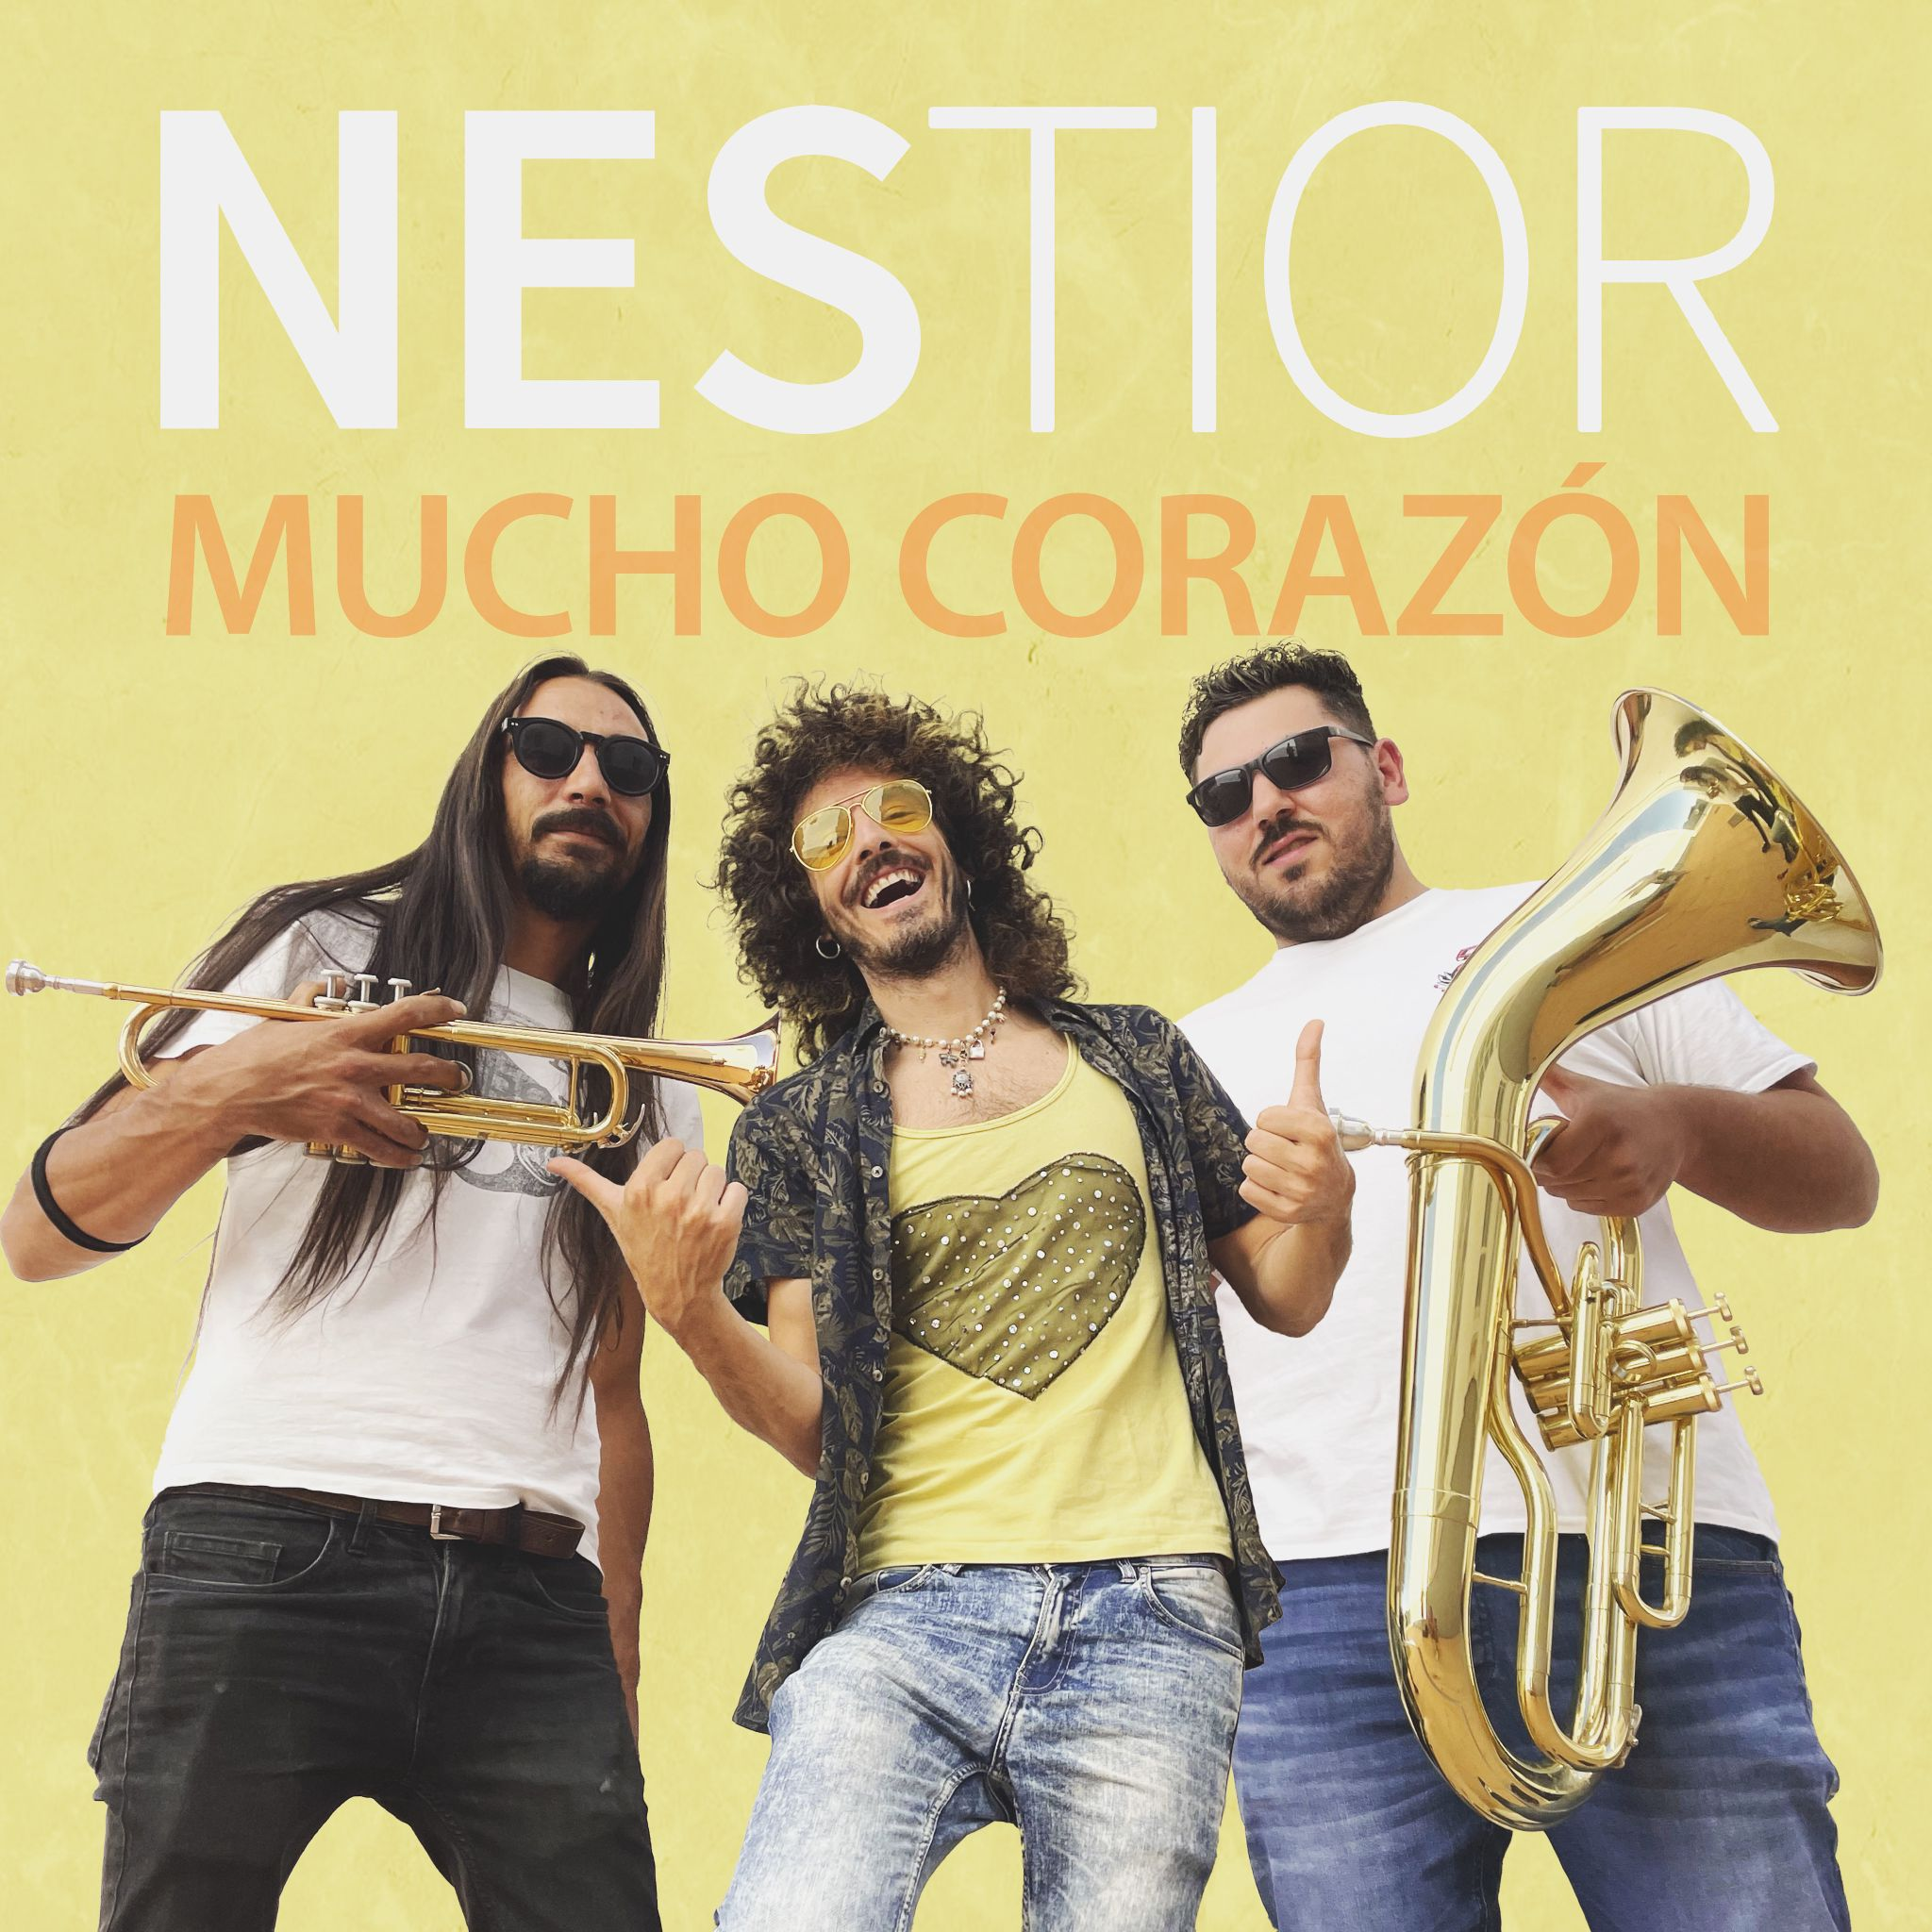 Mucho Corazón is Nestior's new song that is a jingle on Canal Fiesta Radio this summer